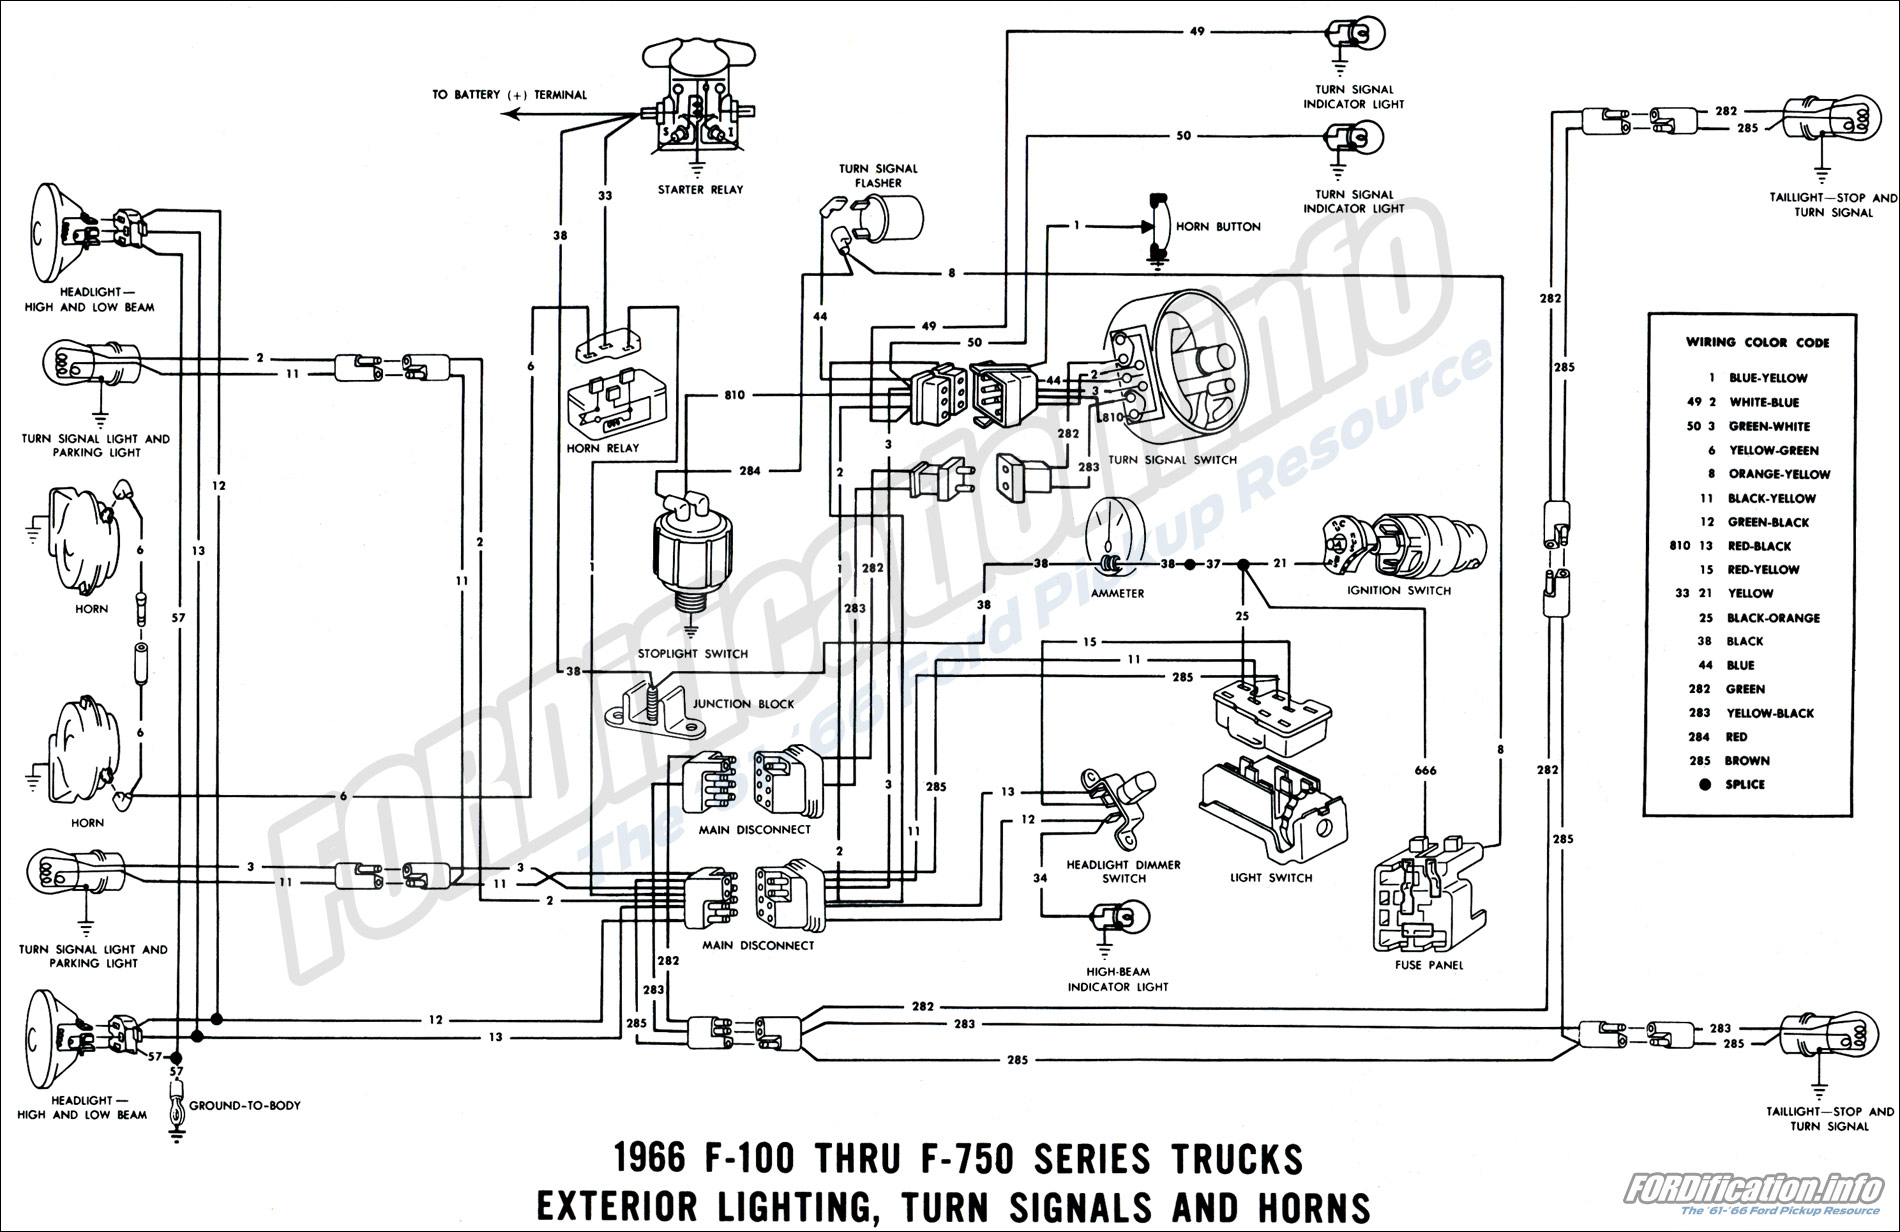 [TVPR_3874]  DIAGRAM] Wiring Diagram For 66 Ford F100 FULL Version HD Quality Ford F100  - 136122.ACCNET.FR | 1966 Ford Truck Wiring Diagram |  | accnet.fr